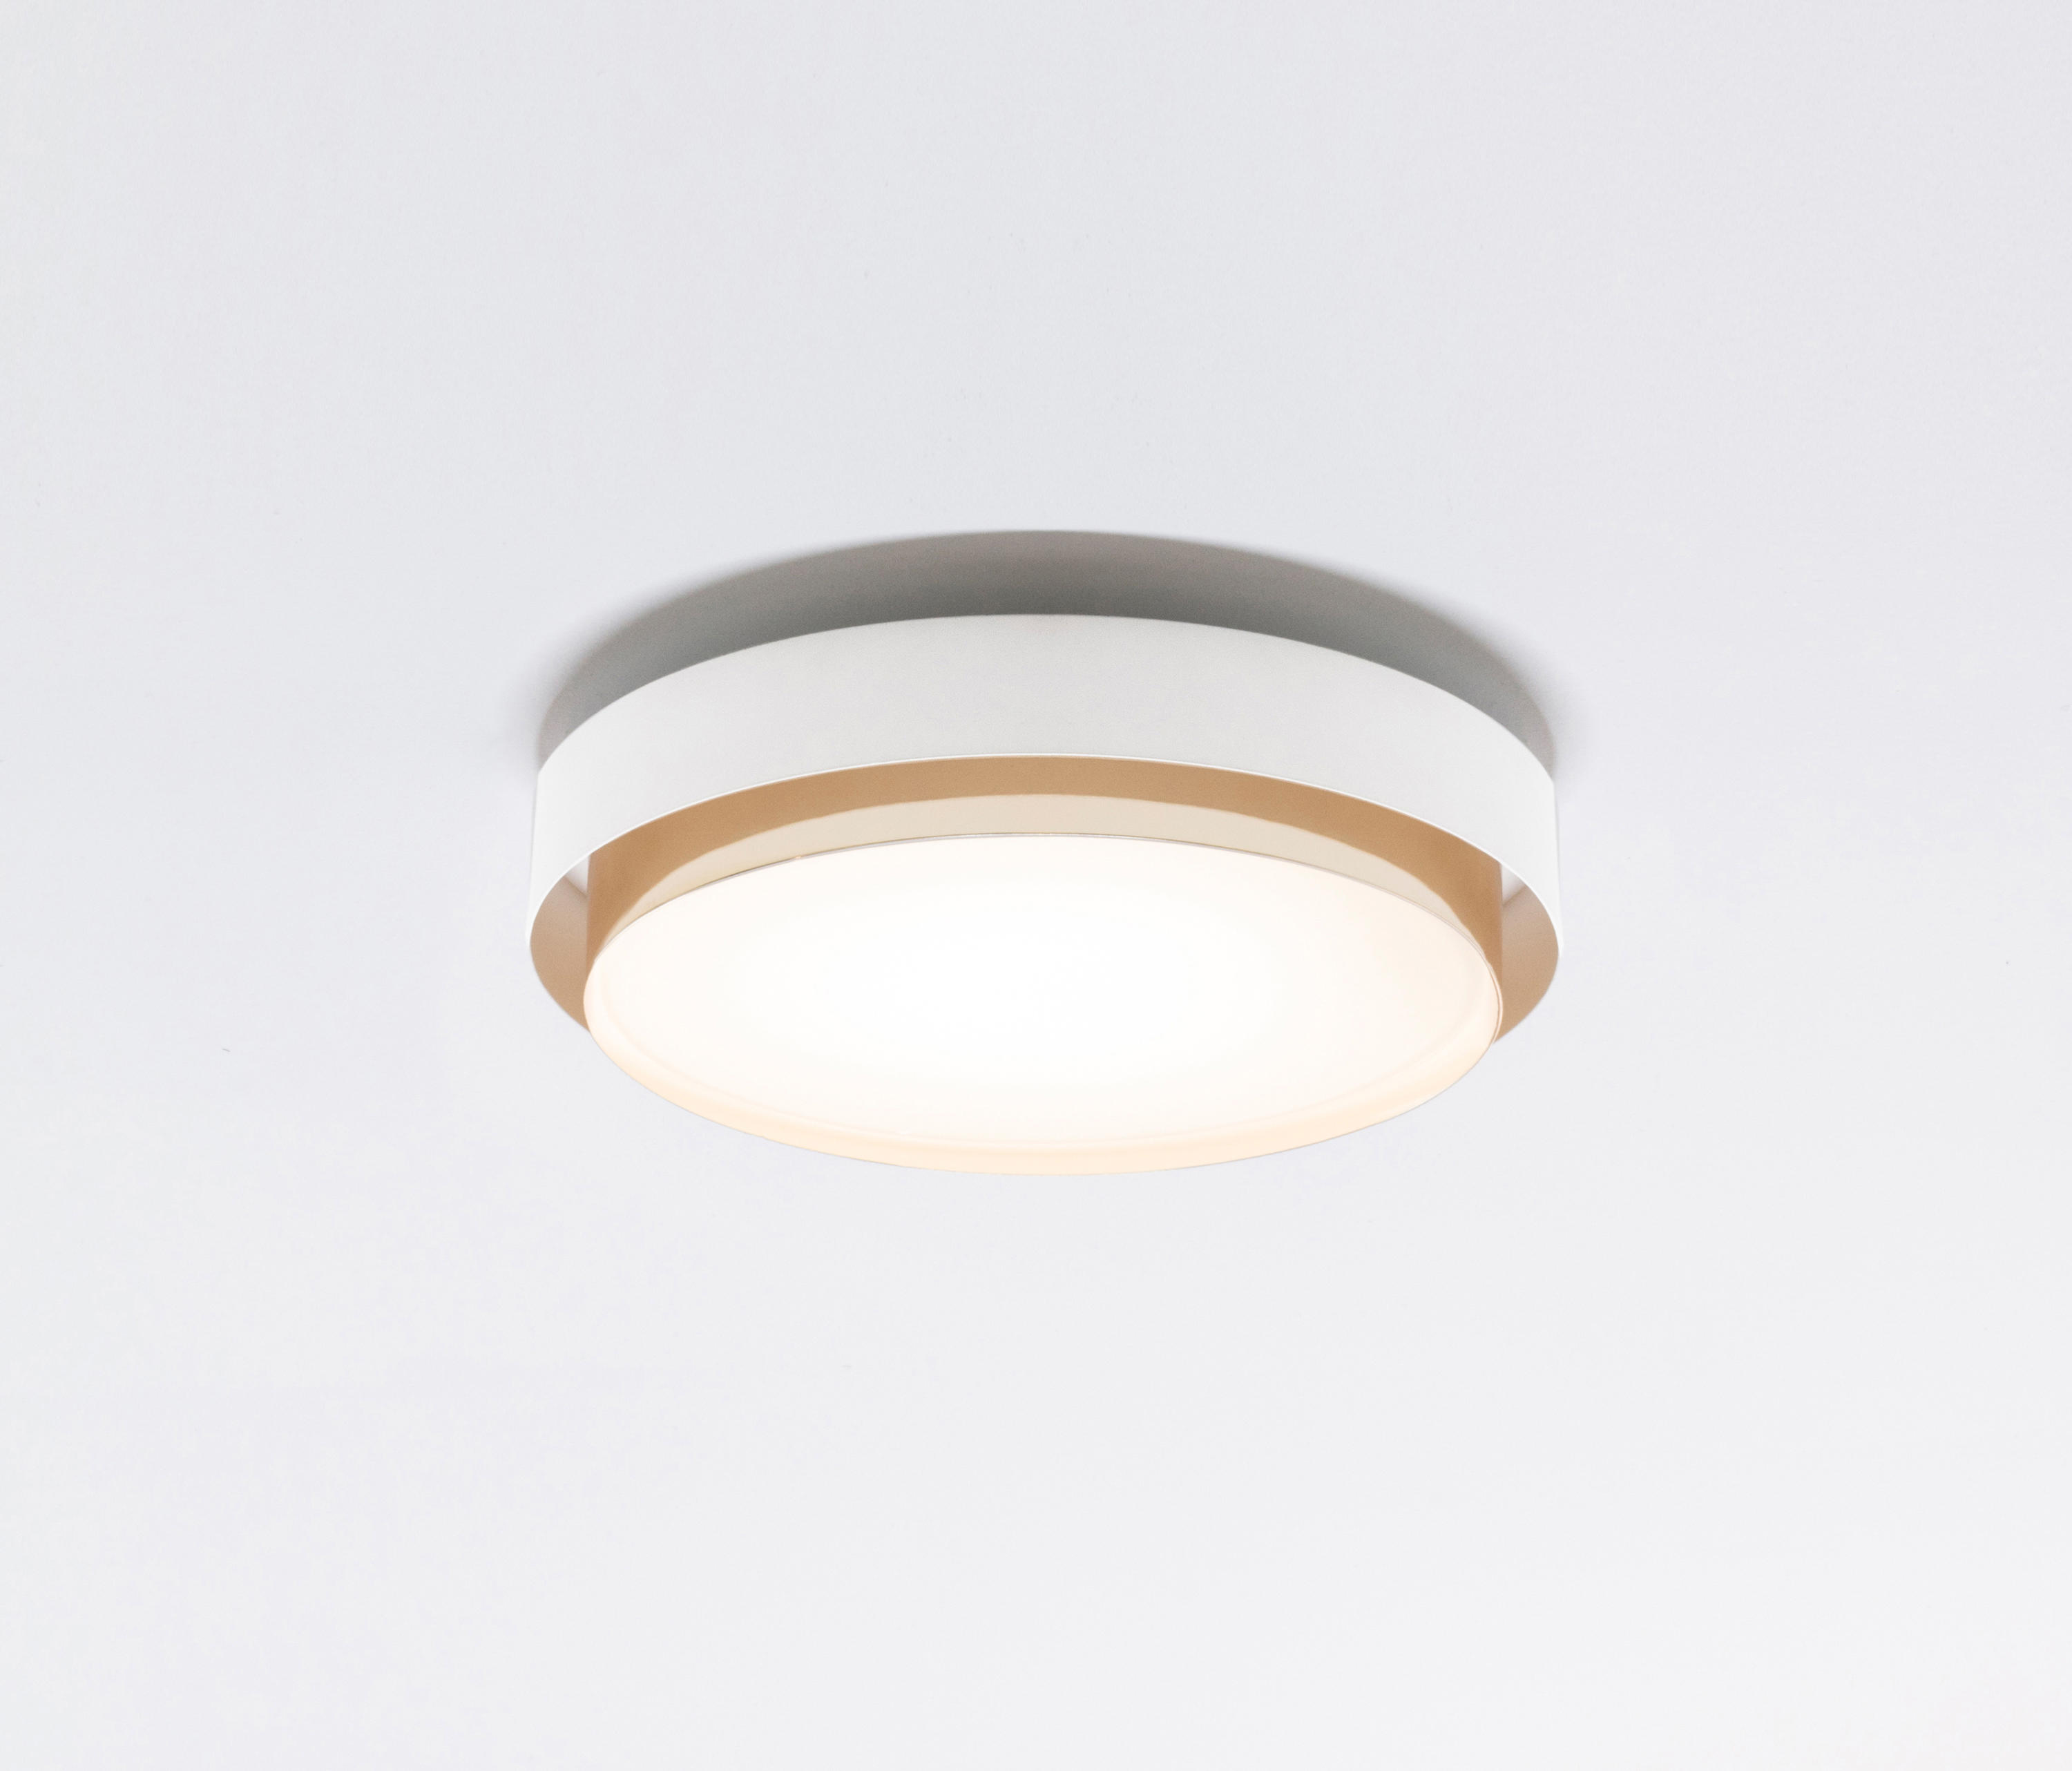 Ring ceiling lamp by inventive ceiling lights